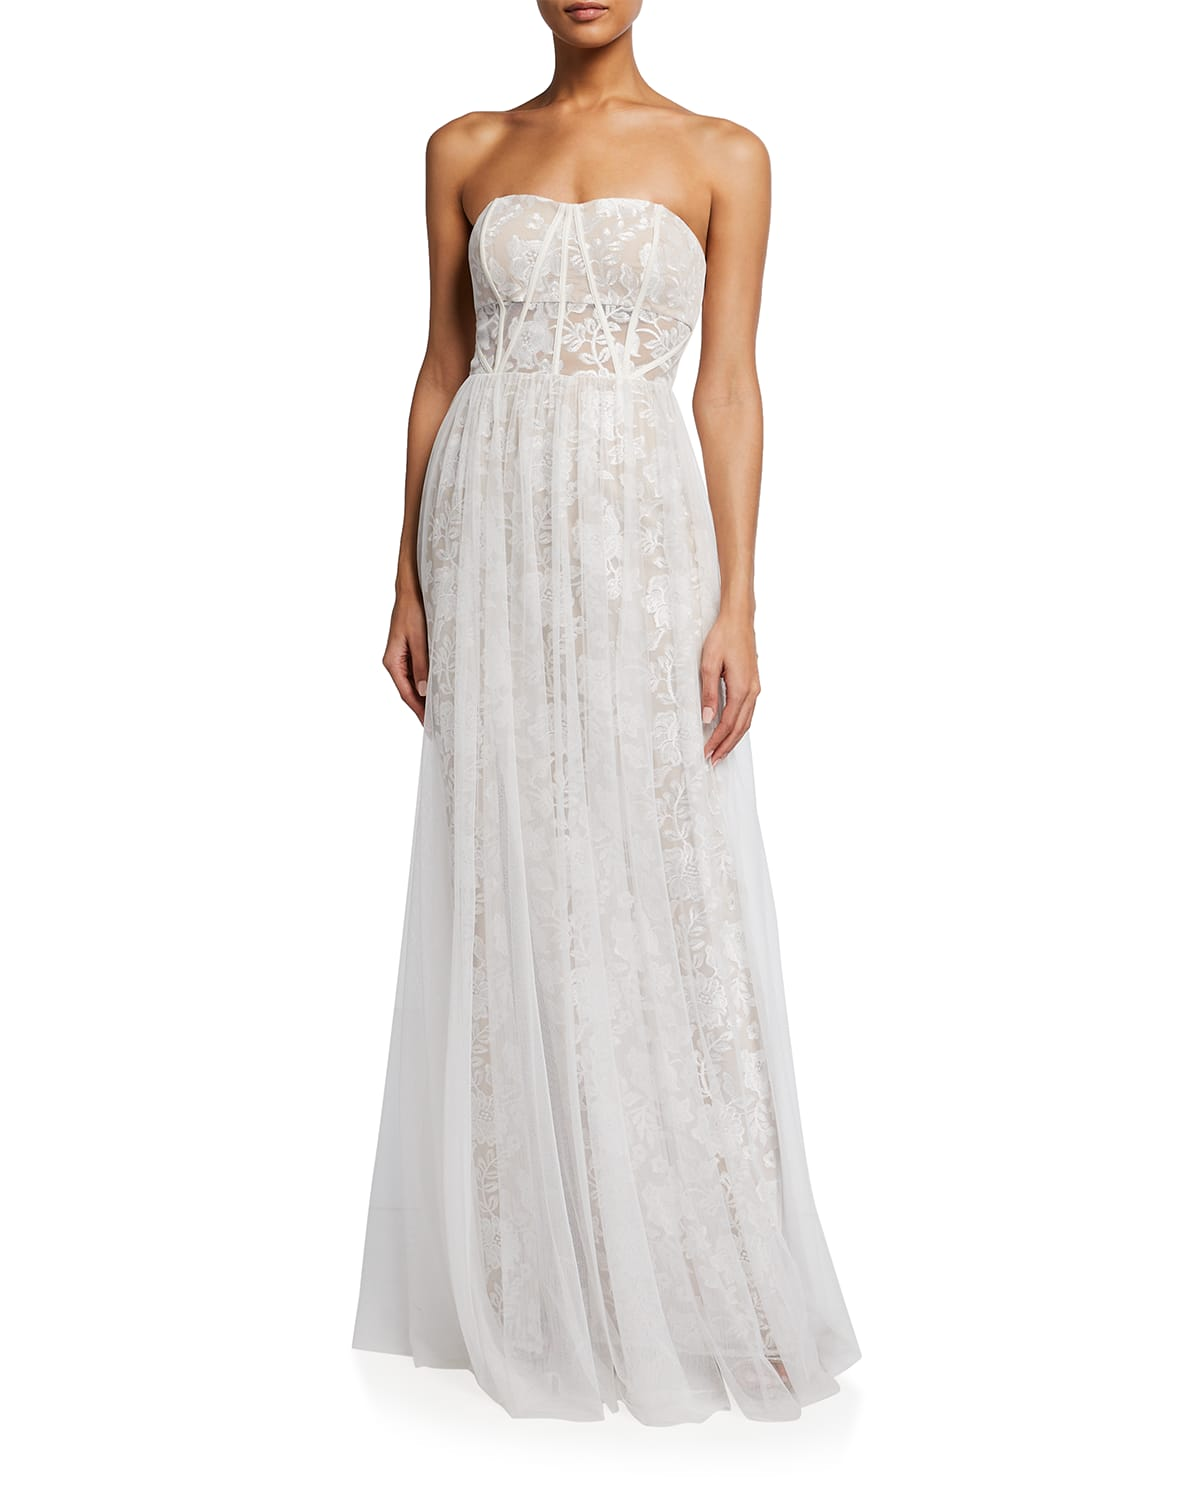 Strapless Floral Embroidered A-Line Gown